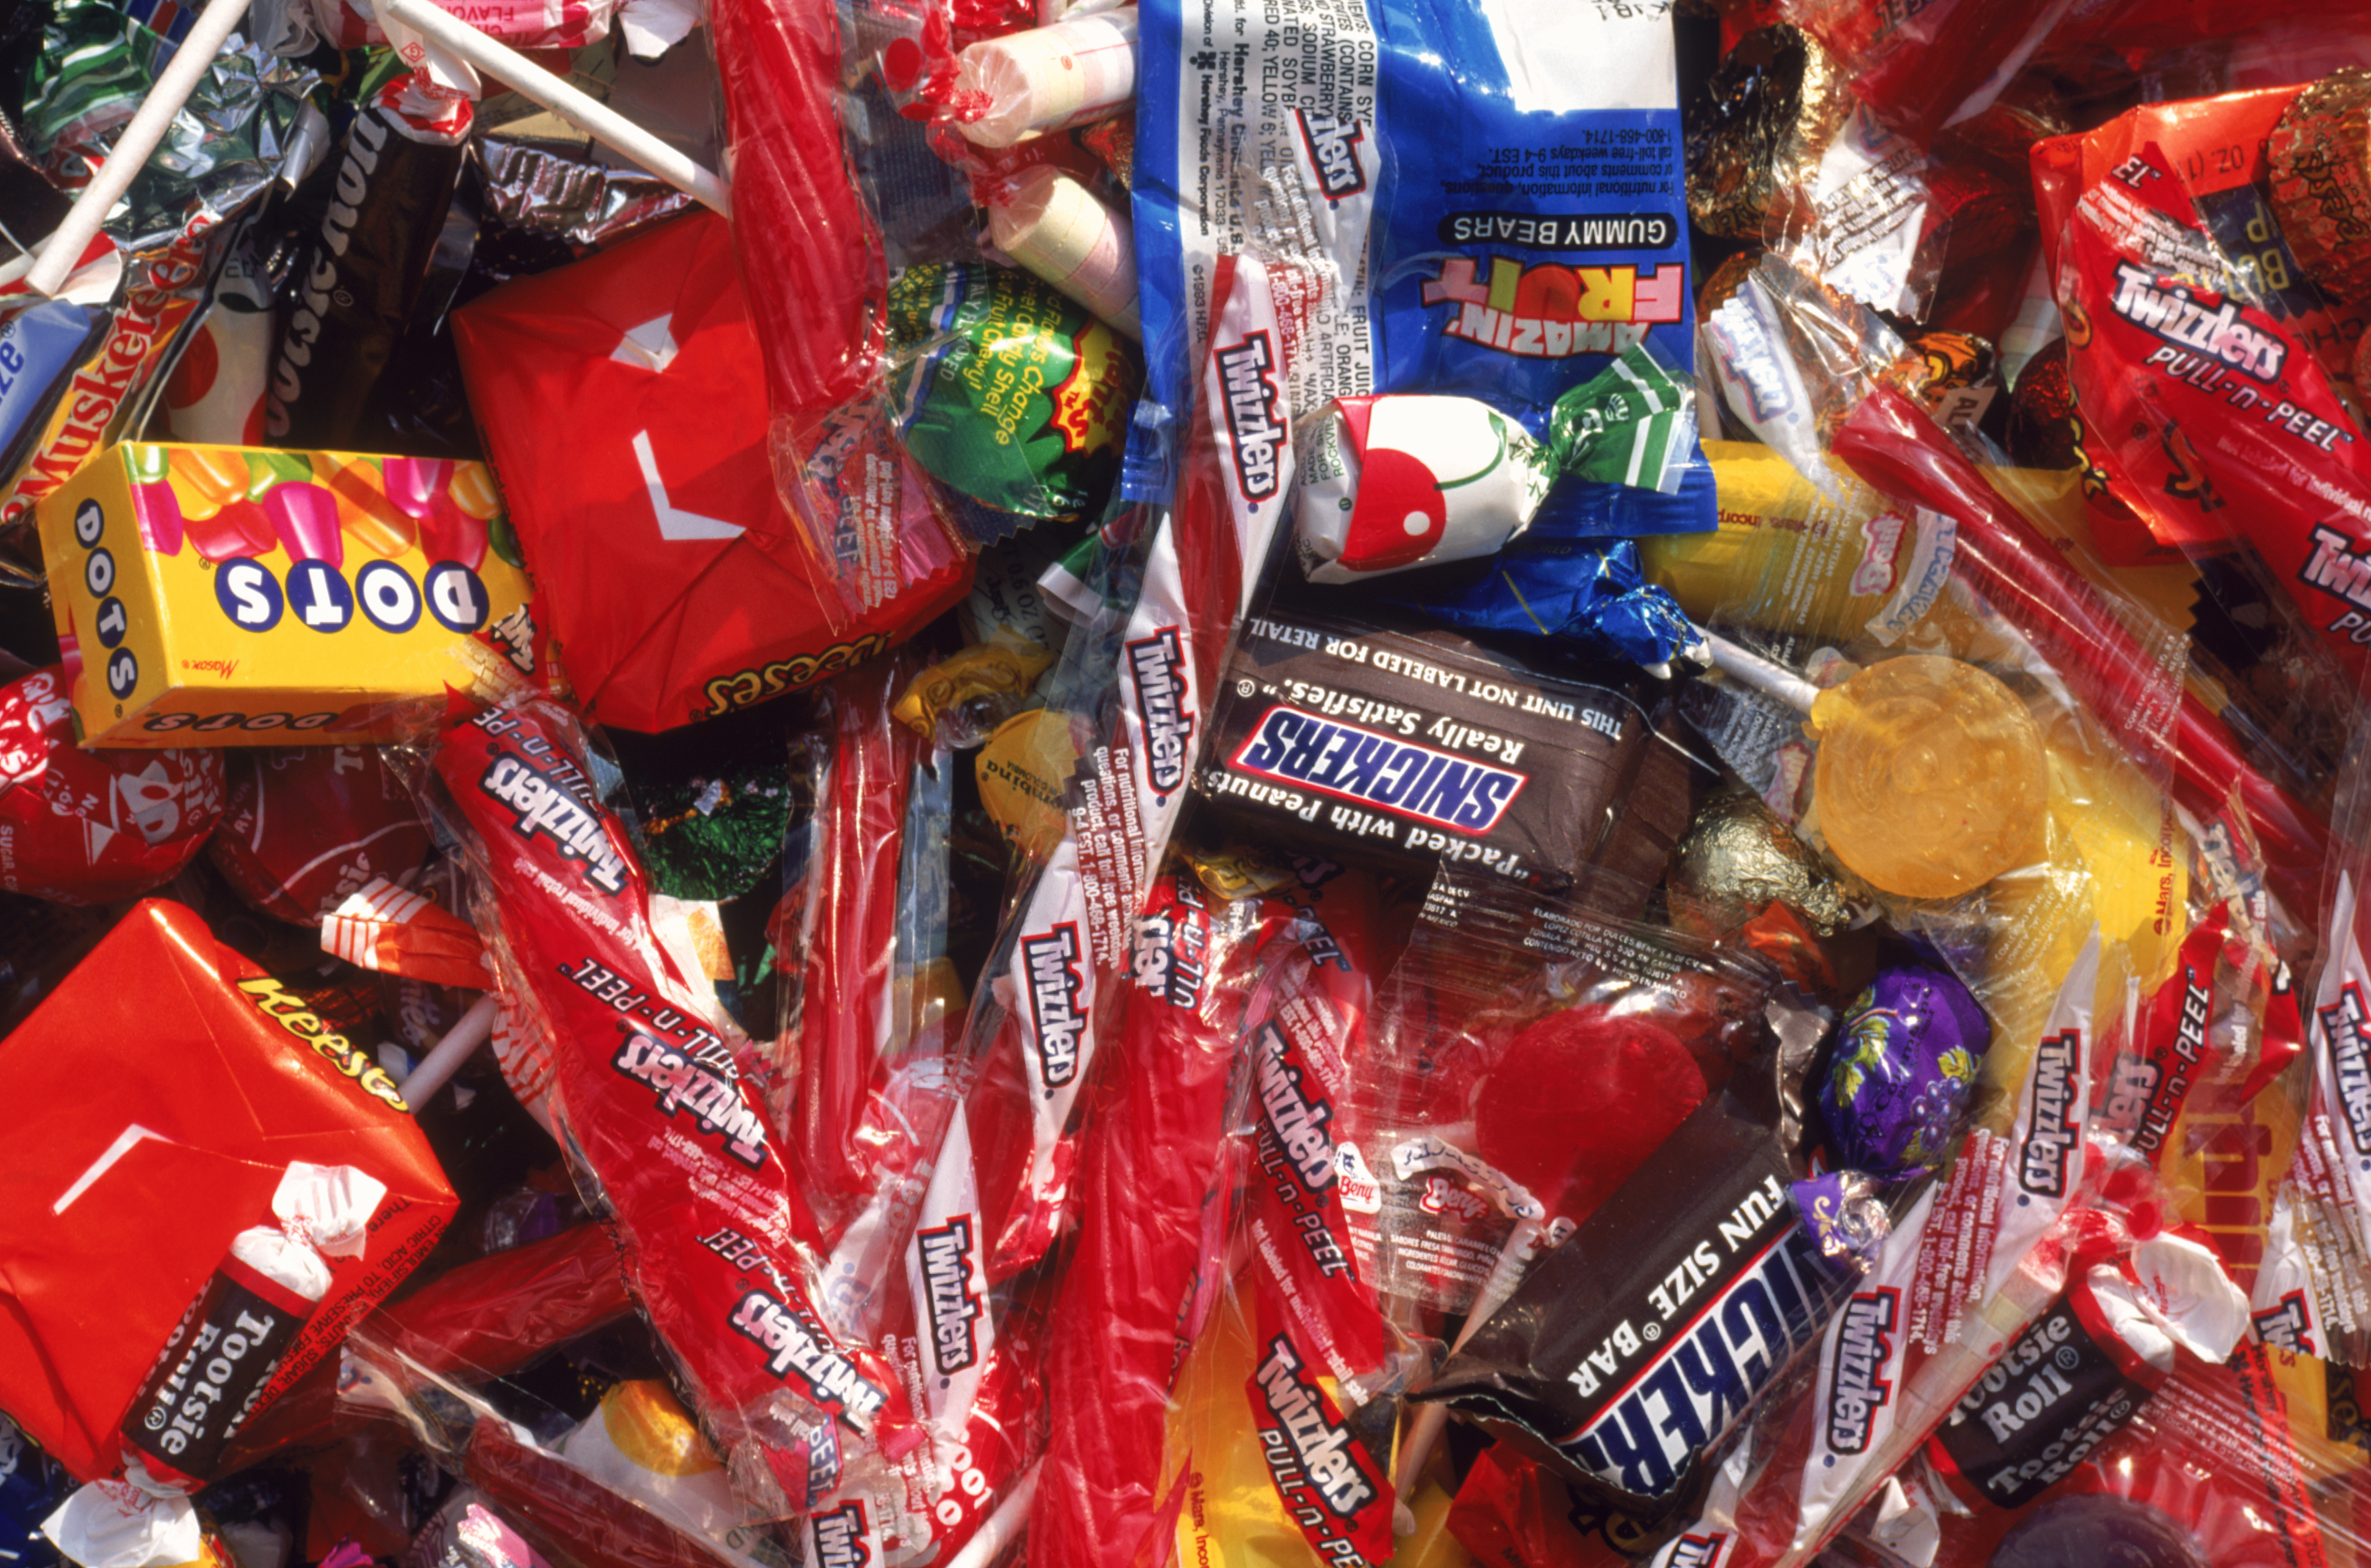 Shoppers are expected to spend $2.7 billion on Halloween candy this year.